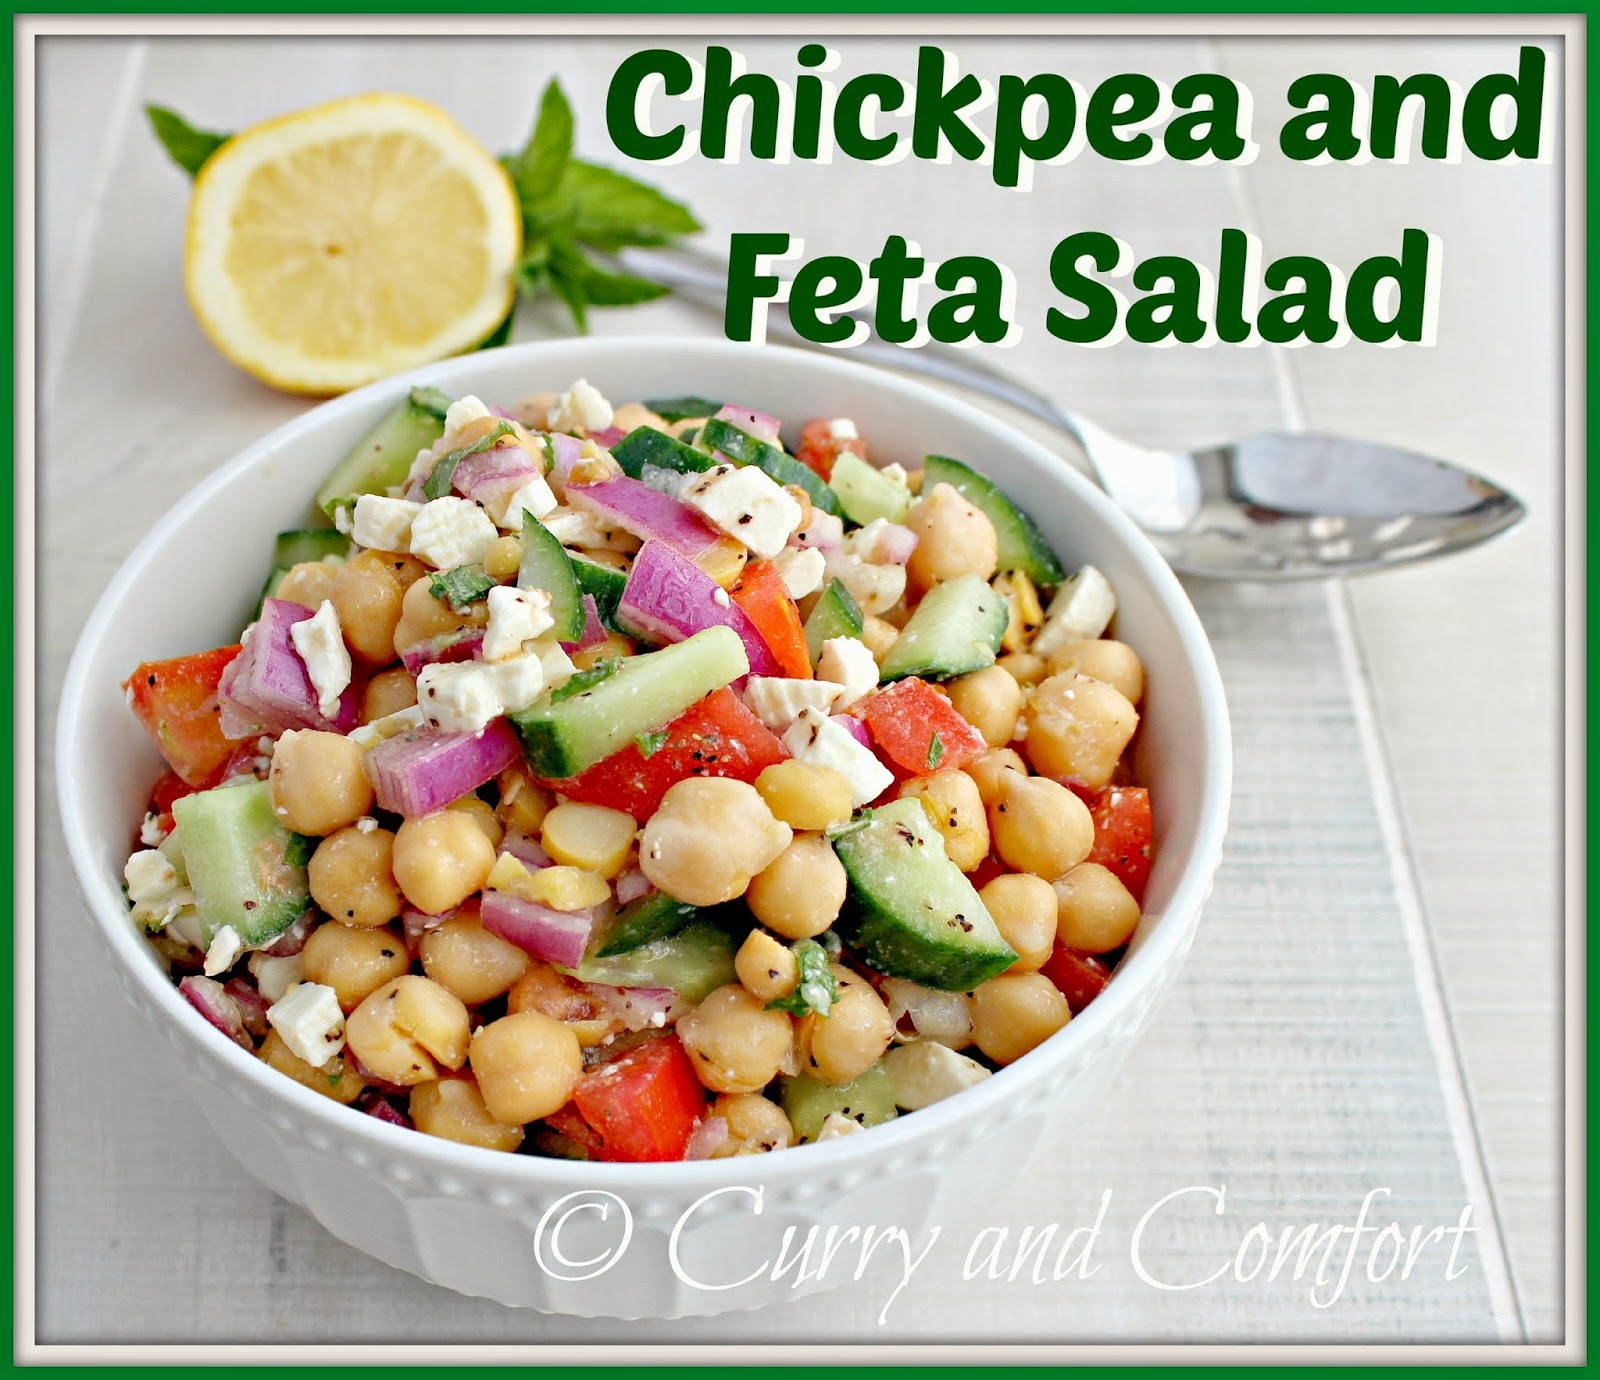 Kitchen Simmer: Chickpea and Feta Salad